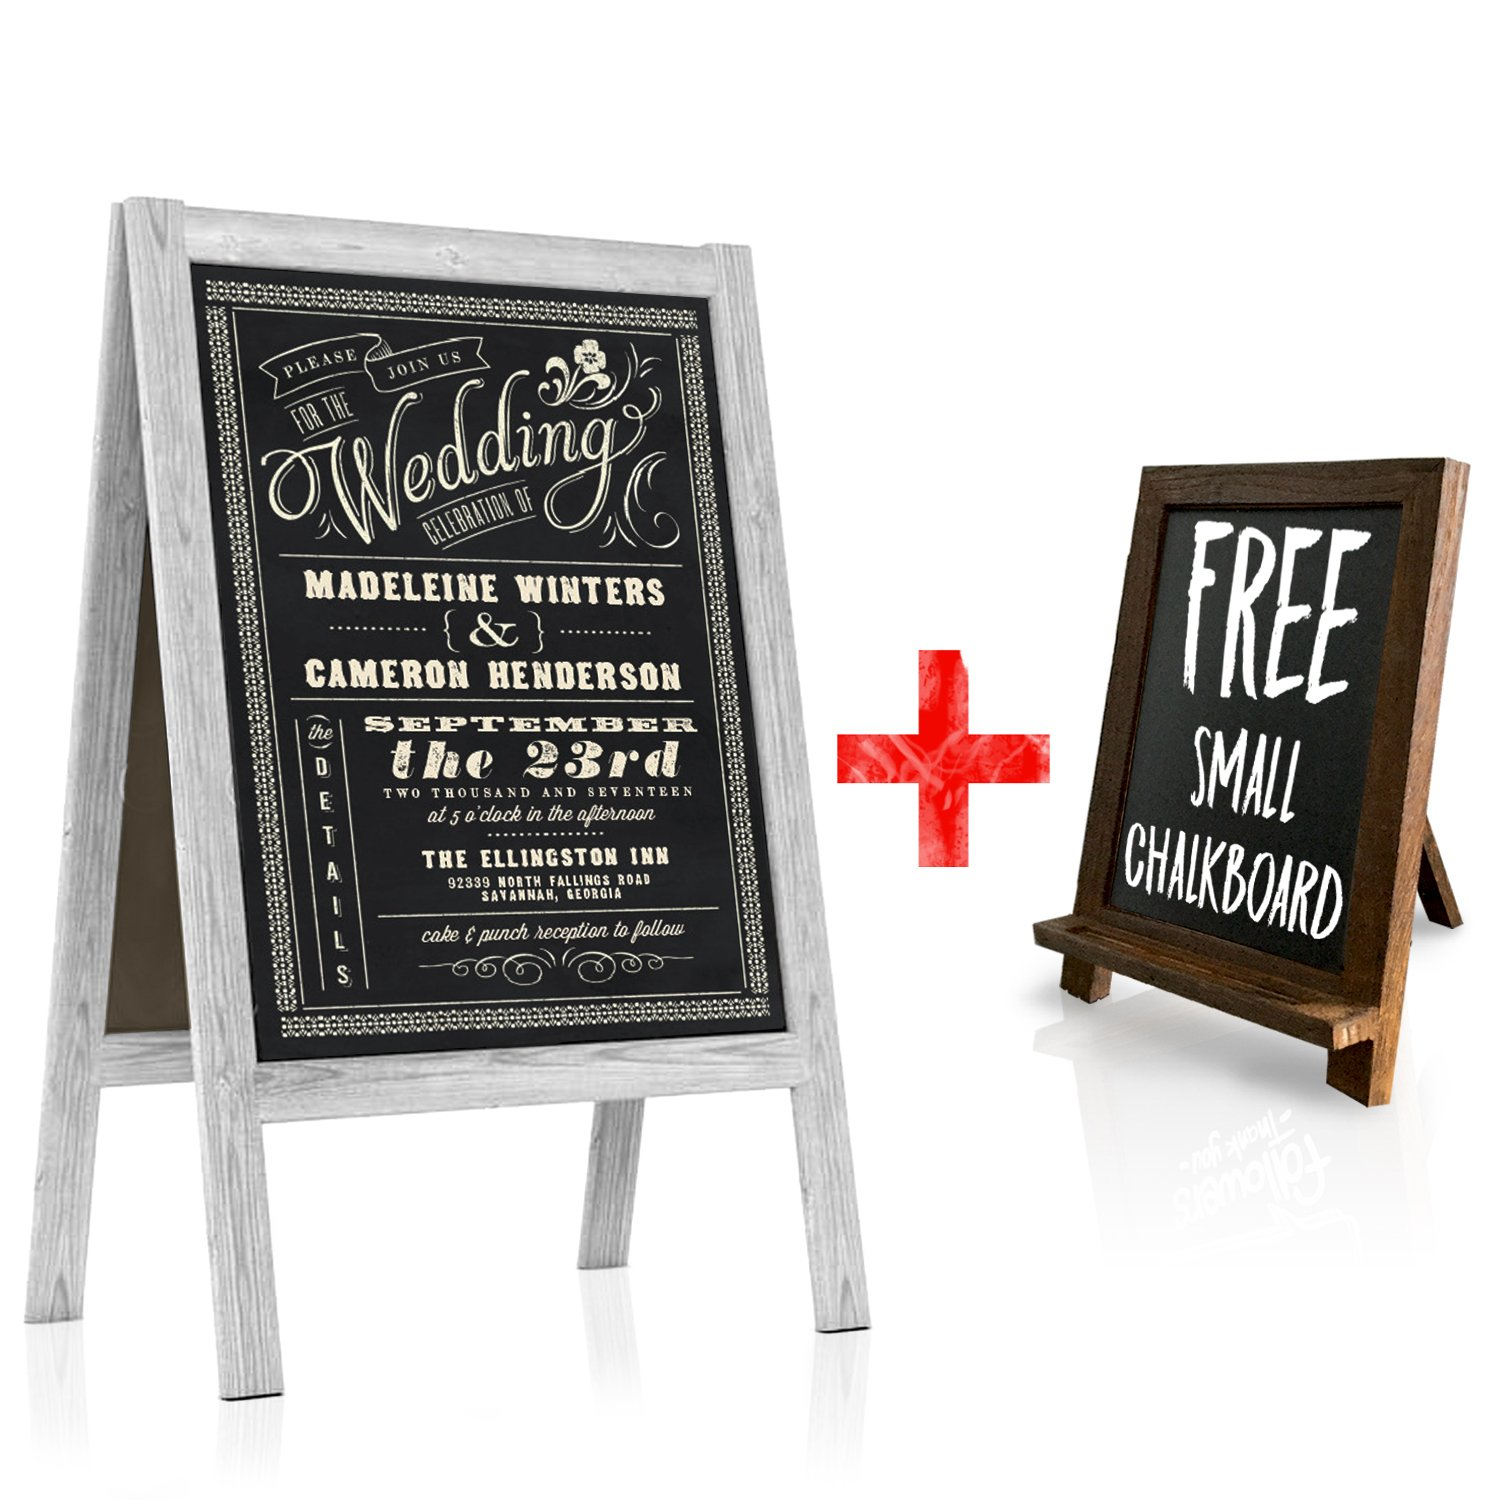 Chalkboard Wedding Sign - Large A Frame Standing Sidewalk | Vintage Sandwich Board Style with Rustic White Wood A-Frame for Indoor & Outdoor Use | Restaurant Menus, Cafe Specials, Business Displays by ArtsyRhino